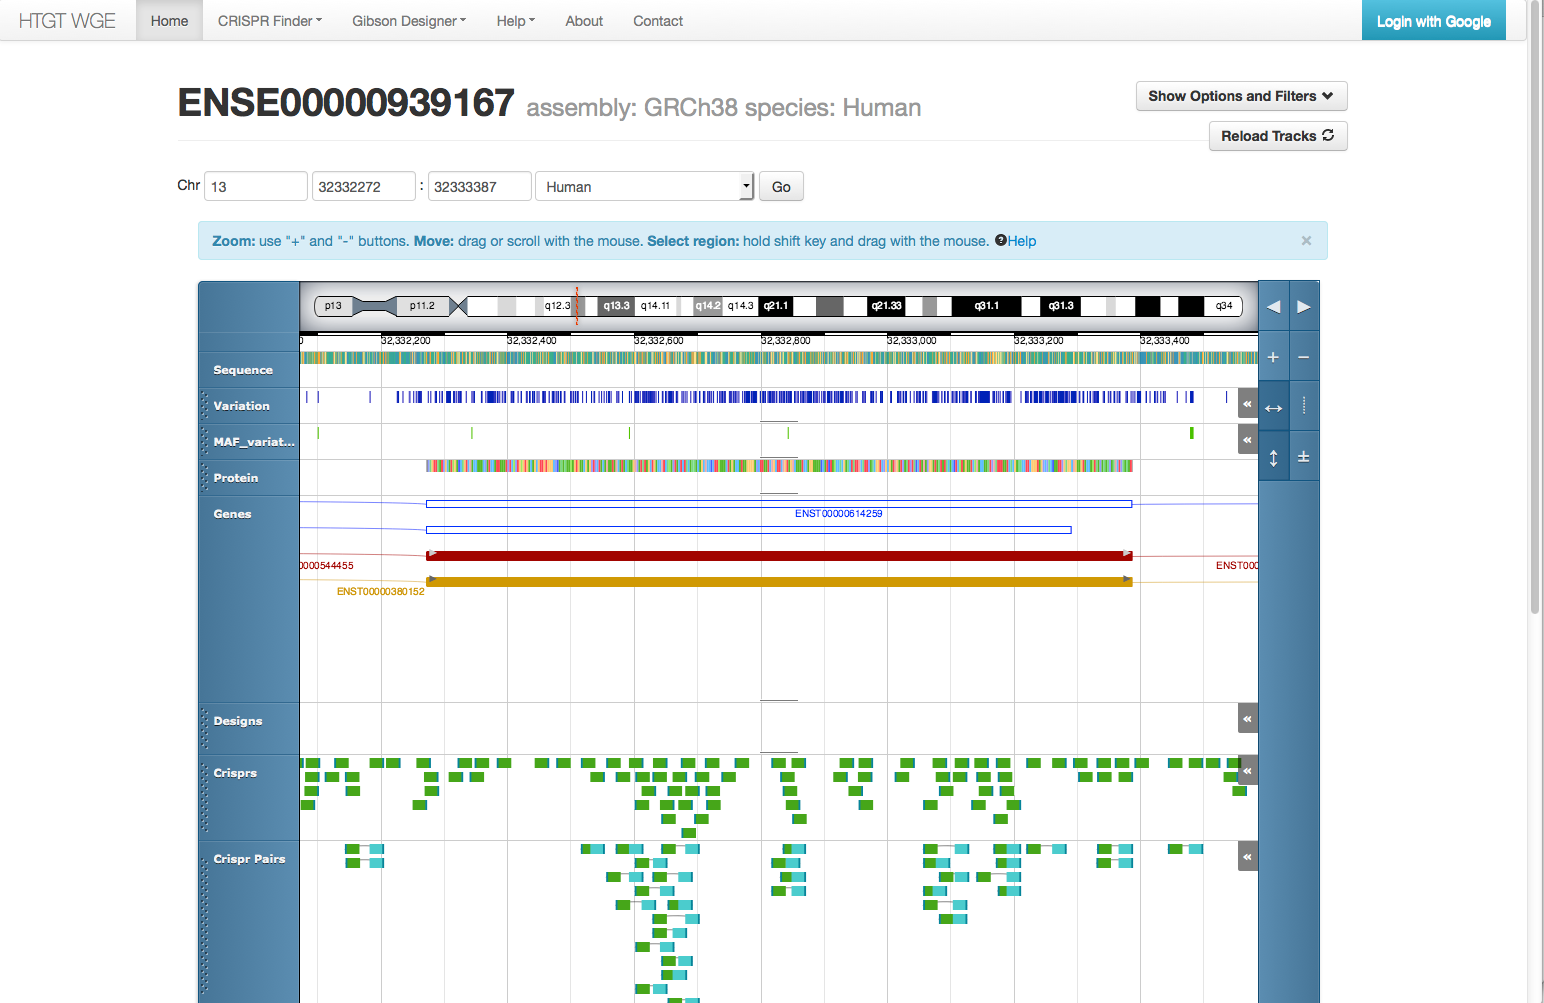 Working on selection of CRISPRs for a genome editing experiment in the WGE Genome Browser